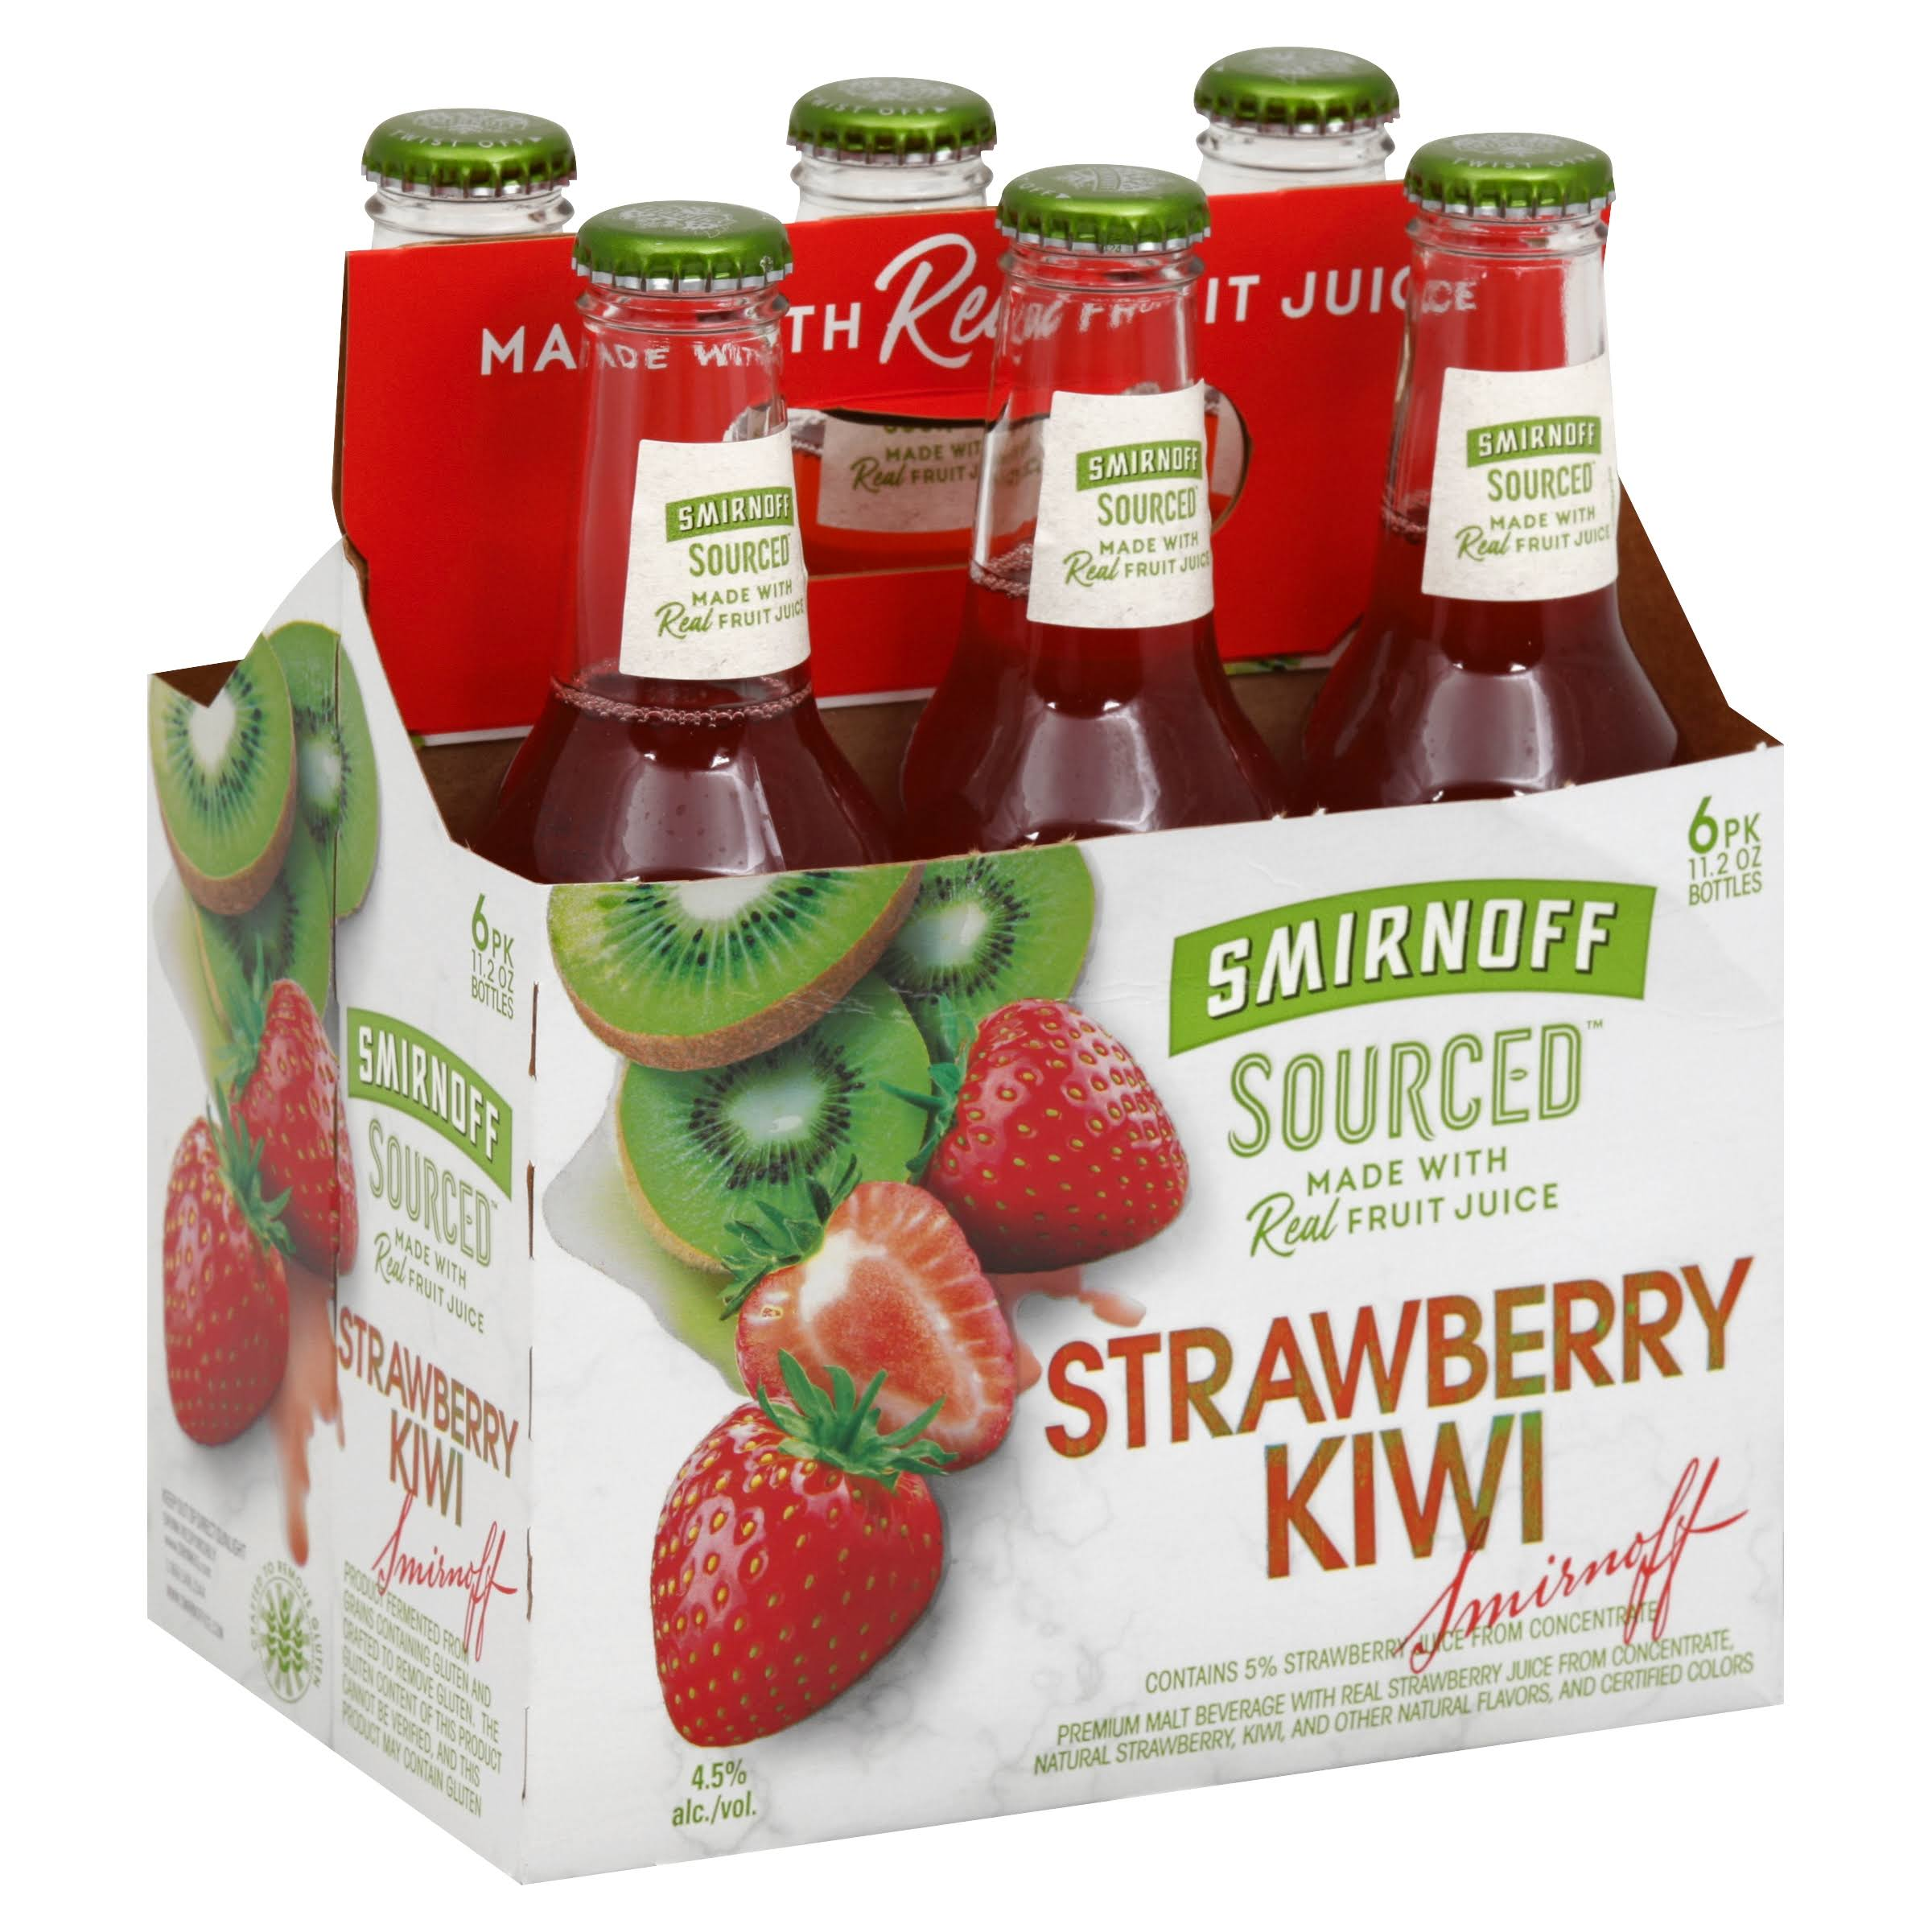 Smirnoff Sourced Malt Beverage, Strawberry Kiwi, 6 Pk - 6 pack, 11.2 oz bottles